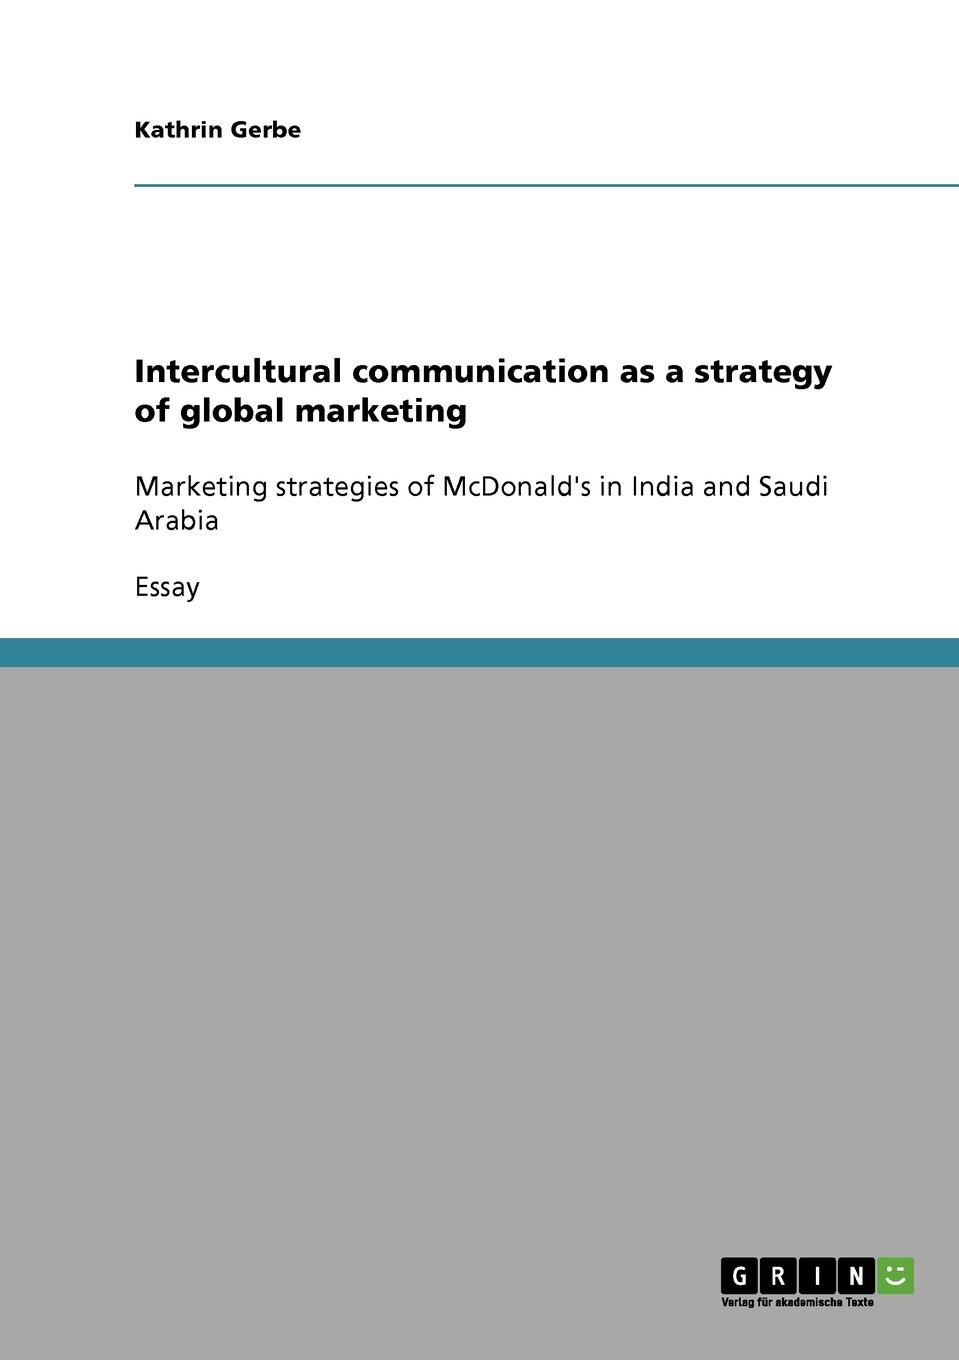 Kathrin Gerbe Intercultural communication as a strategy of global marketing culture technology communication towards an intercultural global village